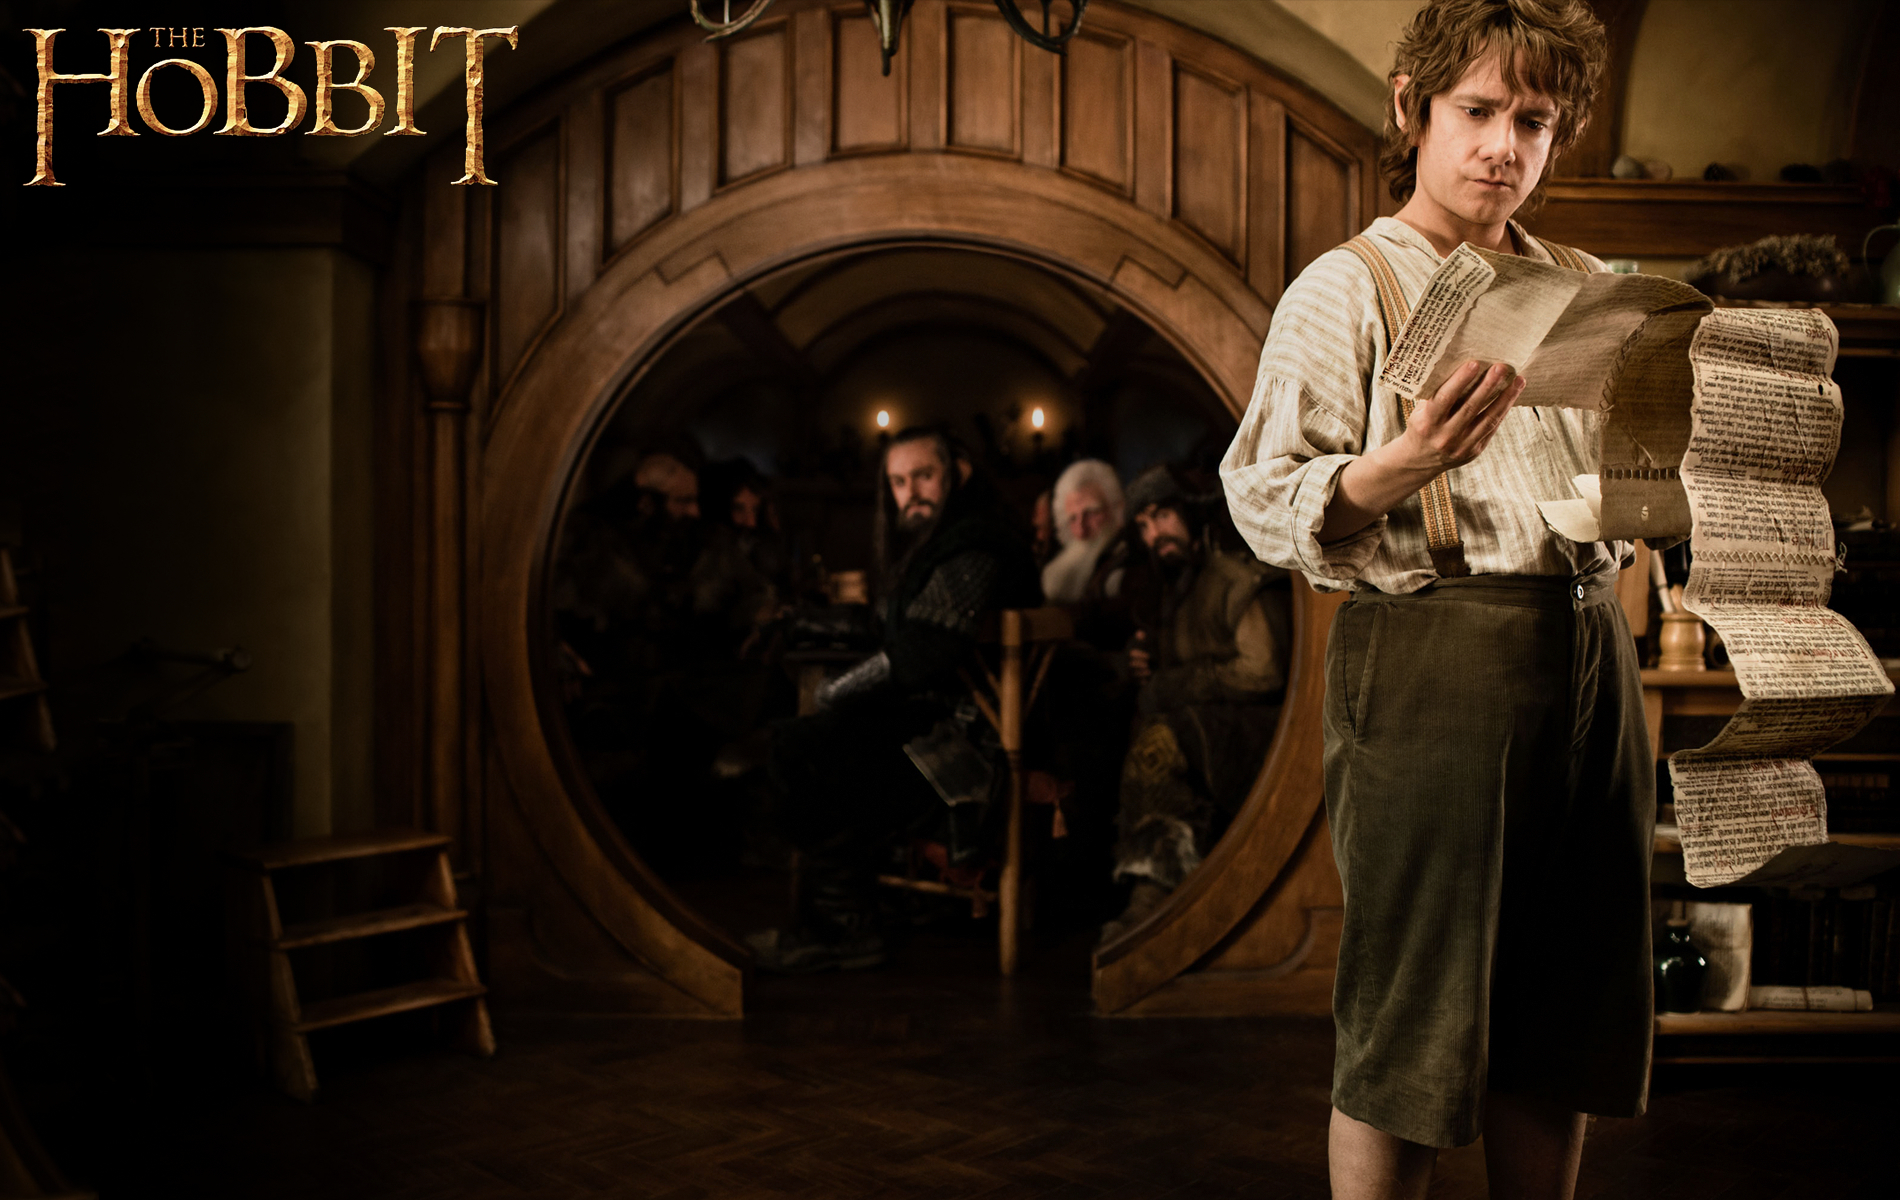 Car The Hobbit martin HD Wallpaper